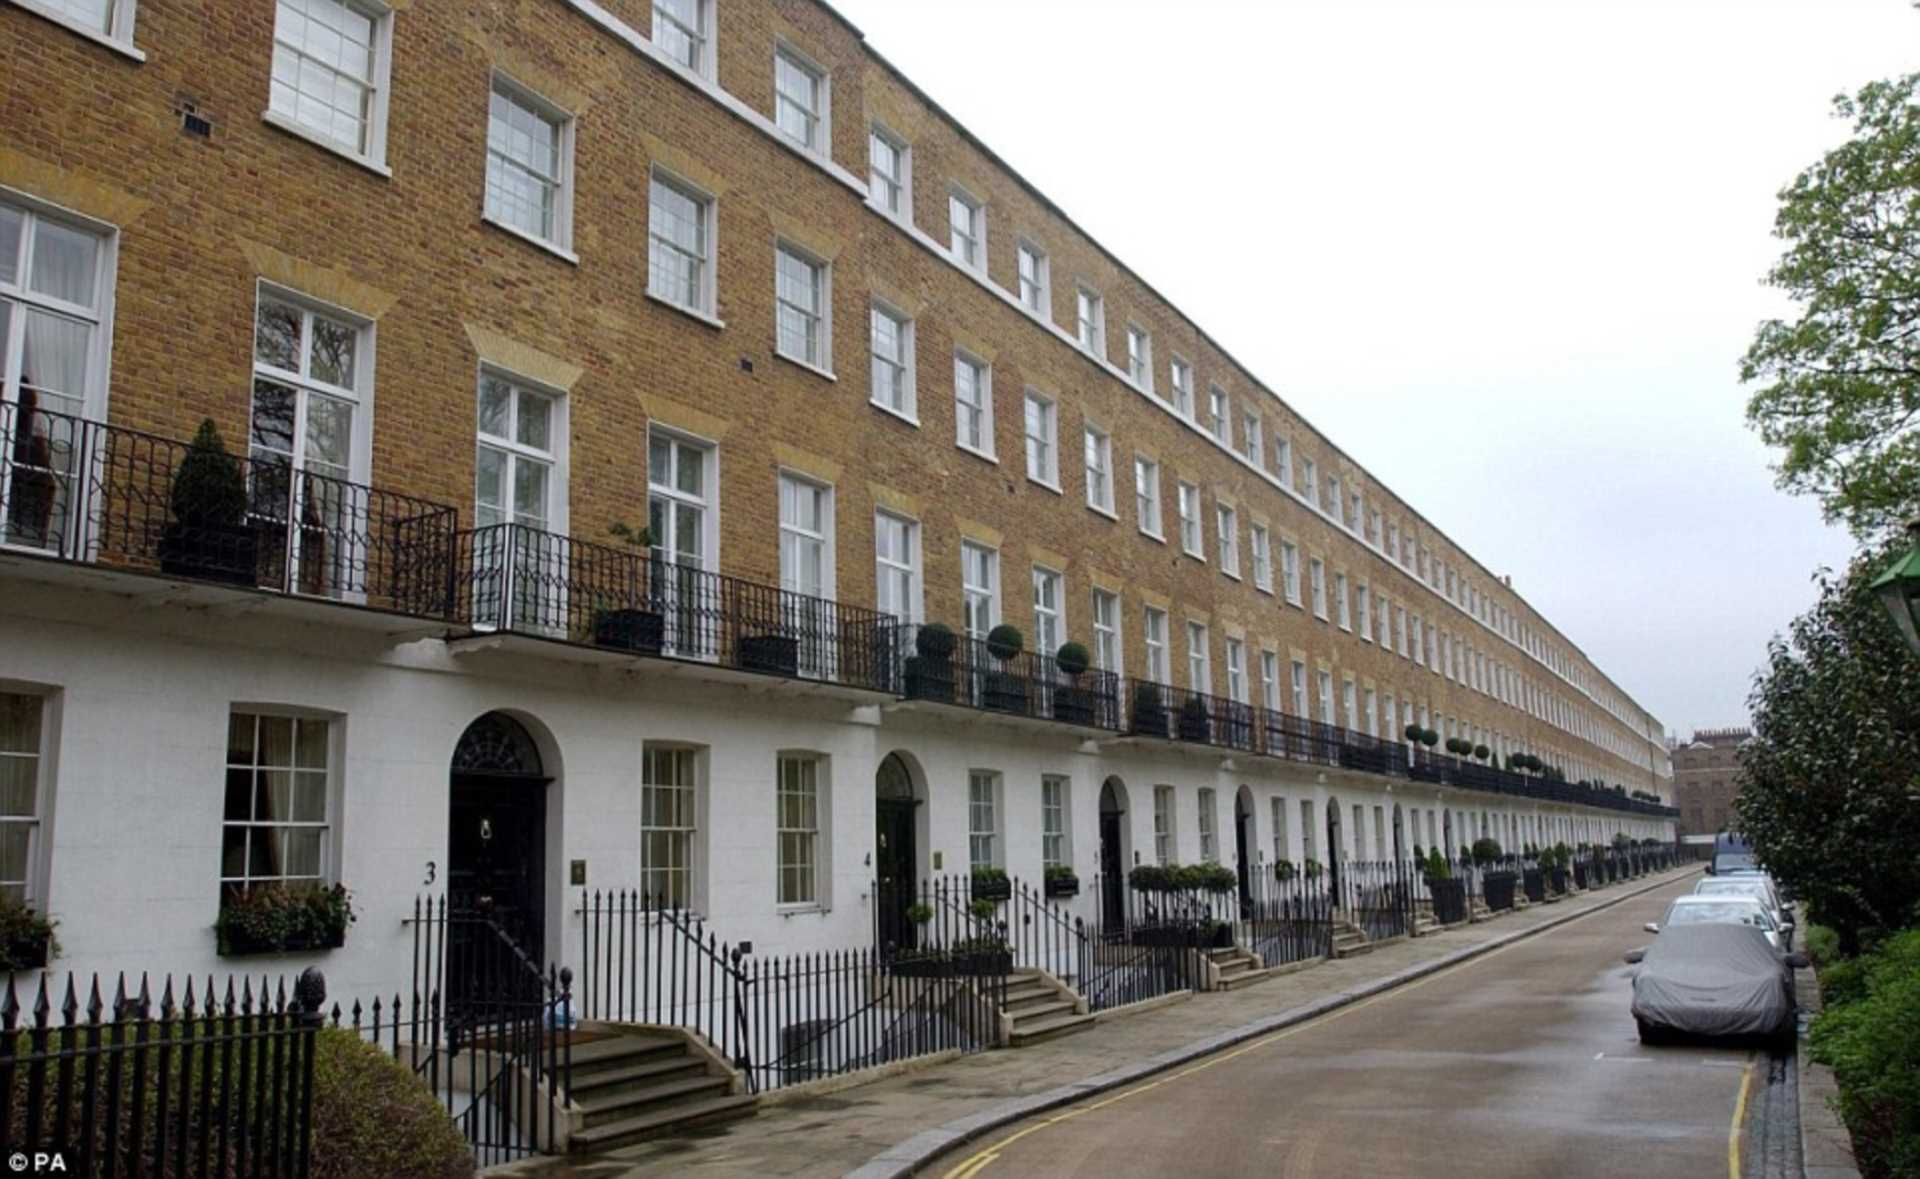 London`s housing market `entering uncharted waters` as homeowners stay put, buyer activity slumps and prices fall